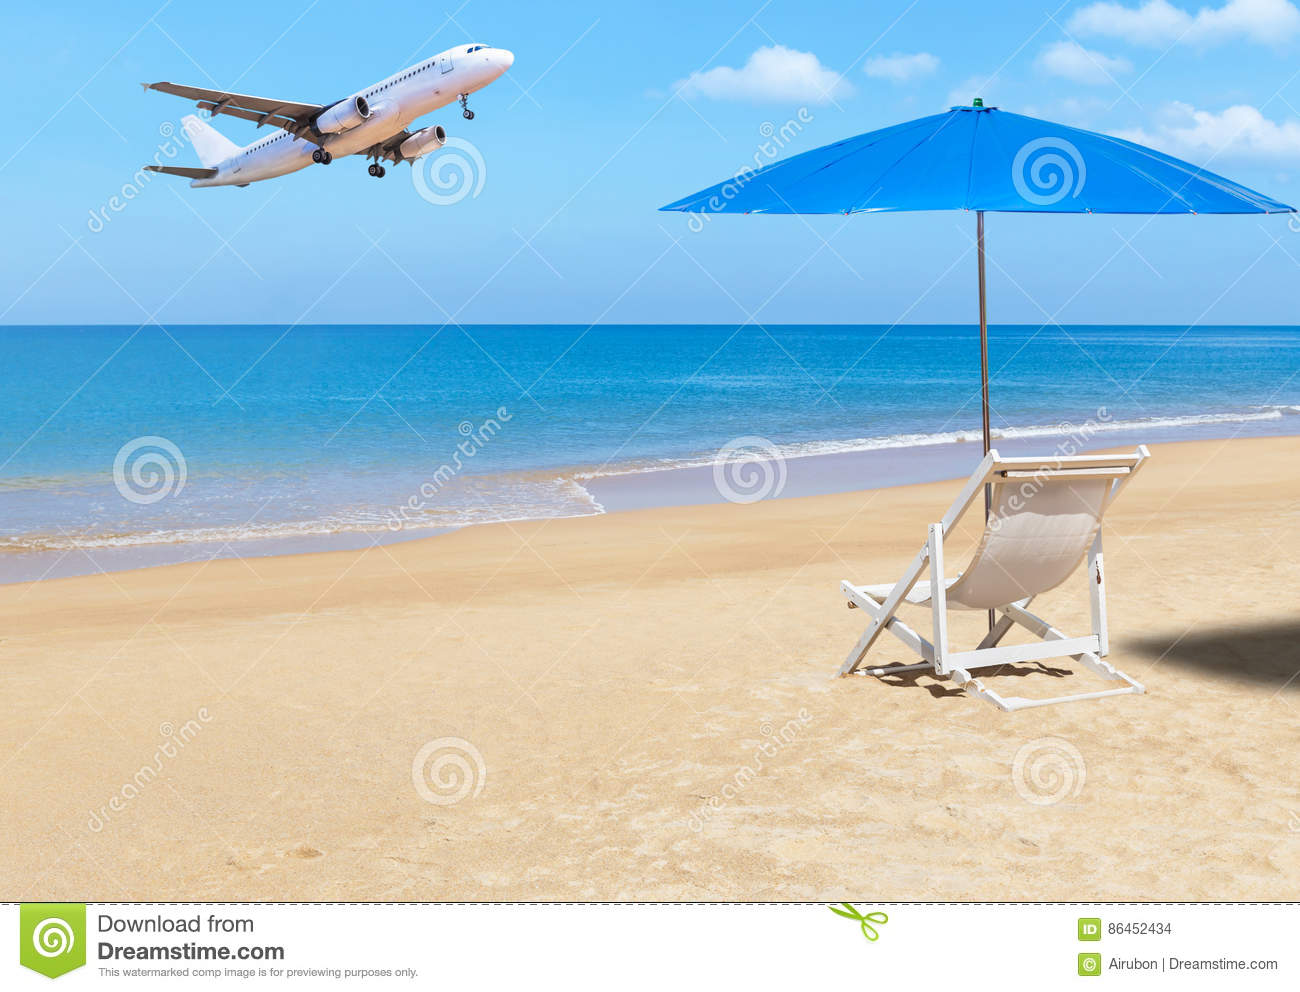 White wooden beach chair - Passenger Airplane Landing Above Tropical Beach With White Wooden Beach Chair And Blue Parasol Stock Photo